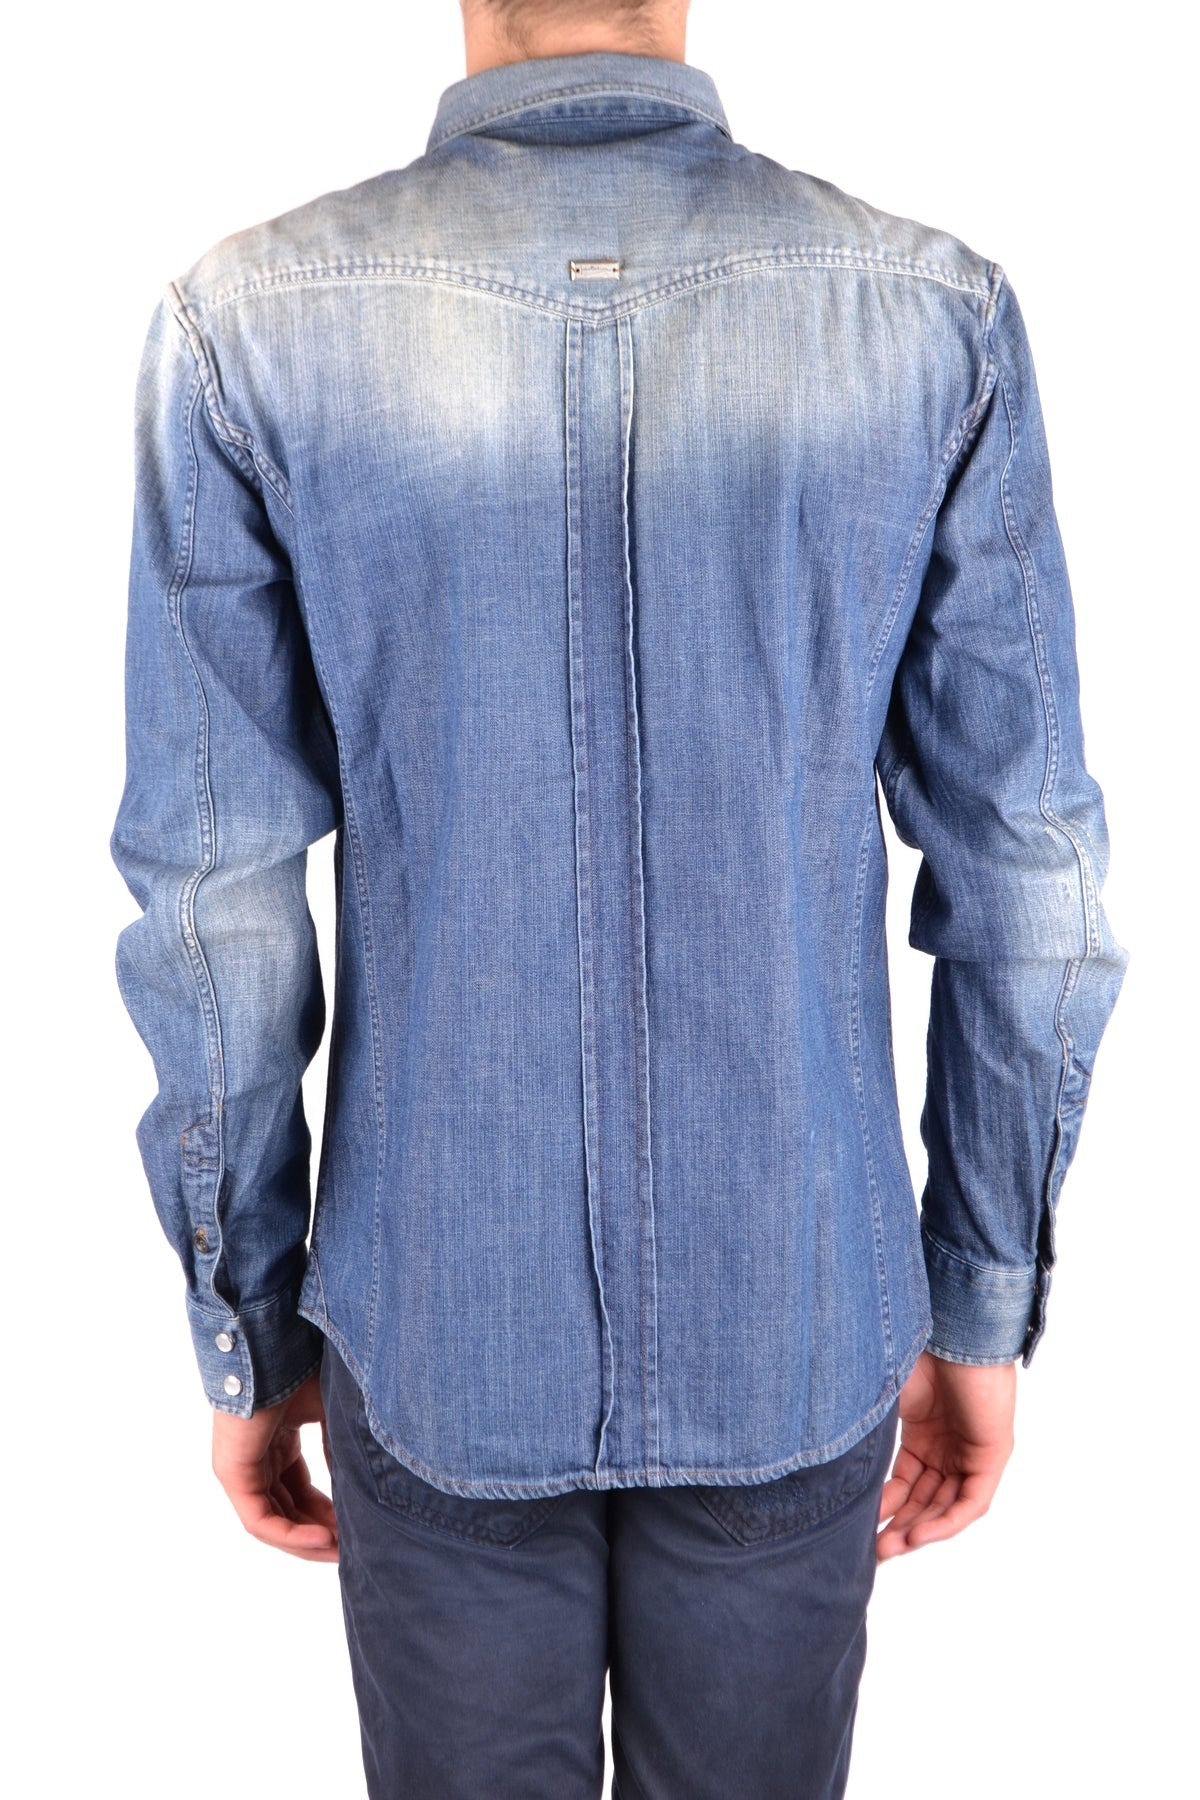 Shirt Pierre Balmain-Men's Fashion - Men's Clothing - Shirts-Product Details Gender: ManMade In: ItalySeason: Fall / WinterMain Color: BlueClothing Type: CamiciaTerms: New With LabelSize: ItComposition: Cotton 100%-Keyomi-Sook